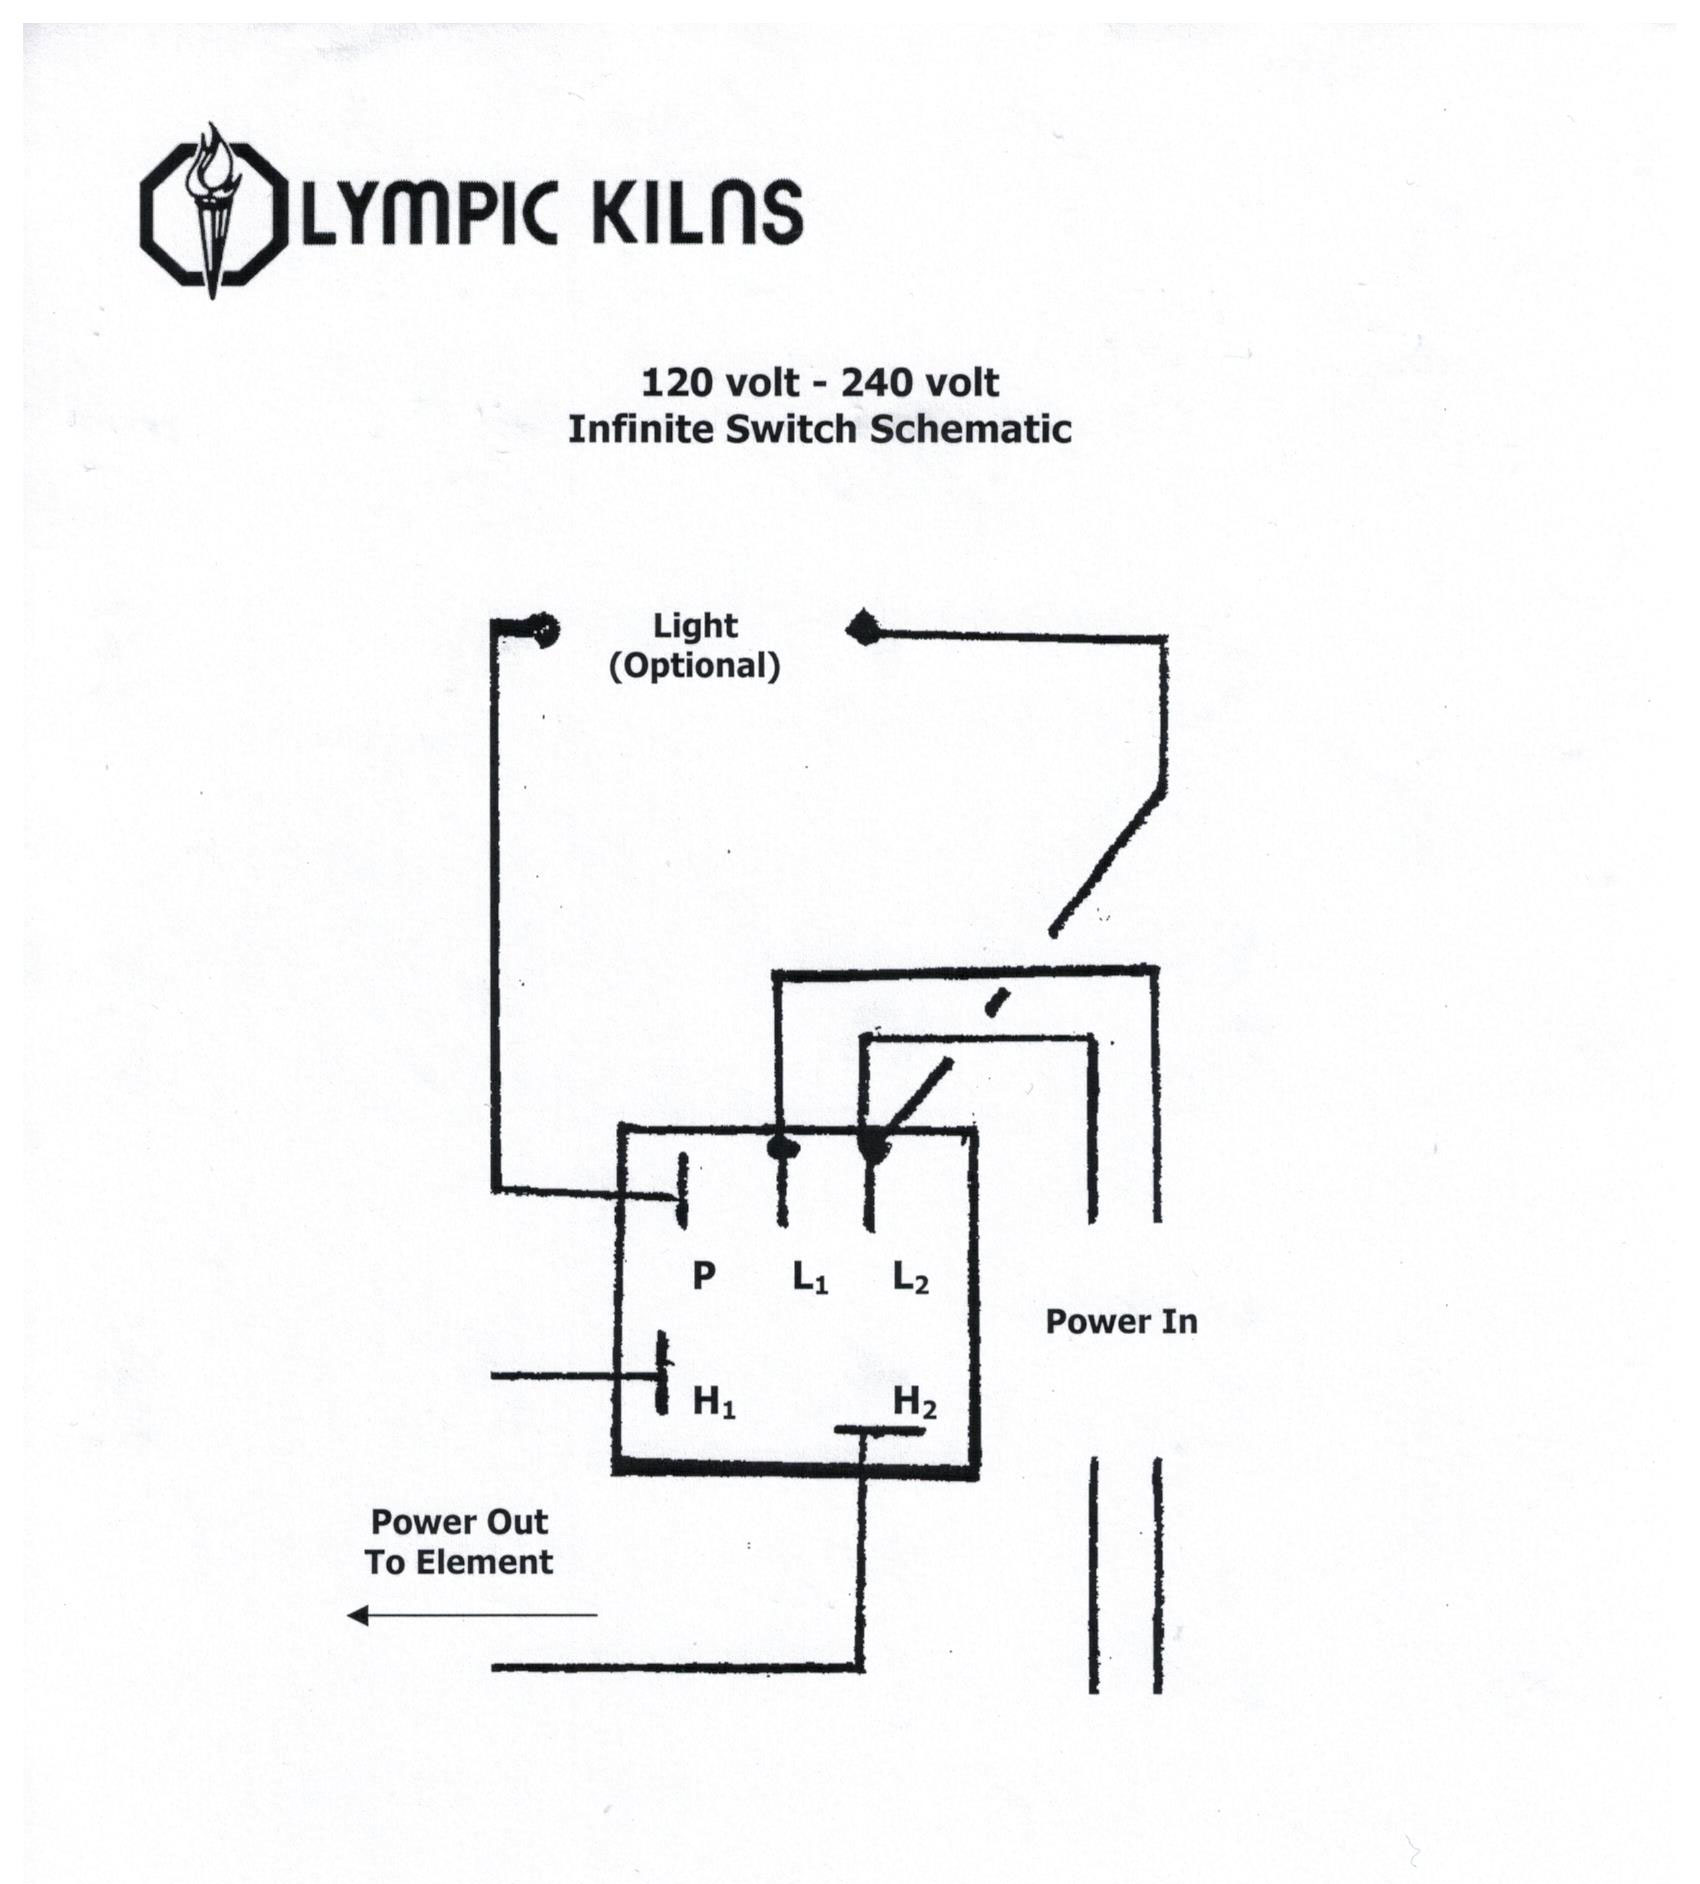 Best Olympic Kiln Replacement Elements - Clay-King.com on 240 volt time delay relay, 240 volt 3 phase motor wiring, california three-way switch diagram, 240 volt gfci breaker diagram, simple photocell diagram, 24 volt wiring diagram, air compressor 240 volt circuit diagram,